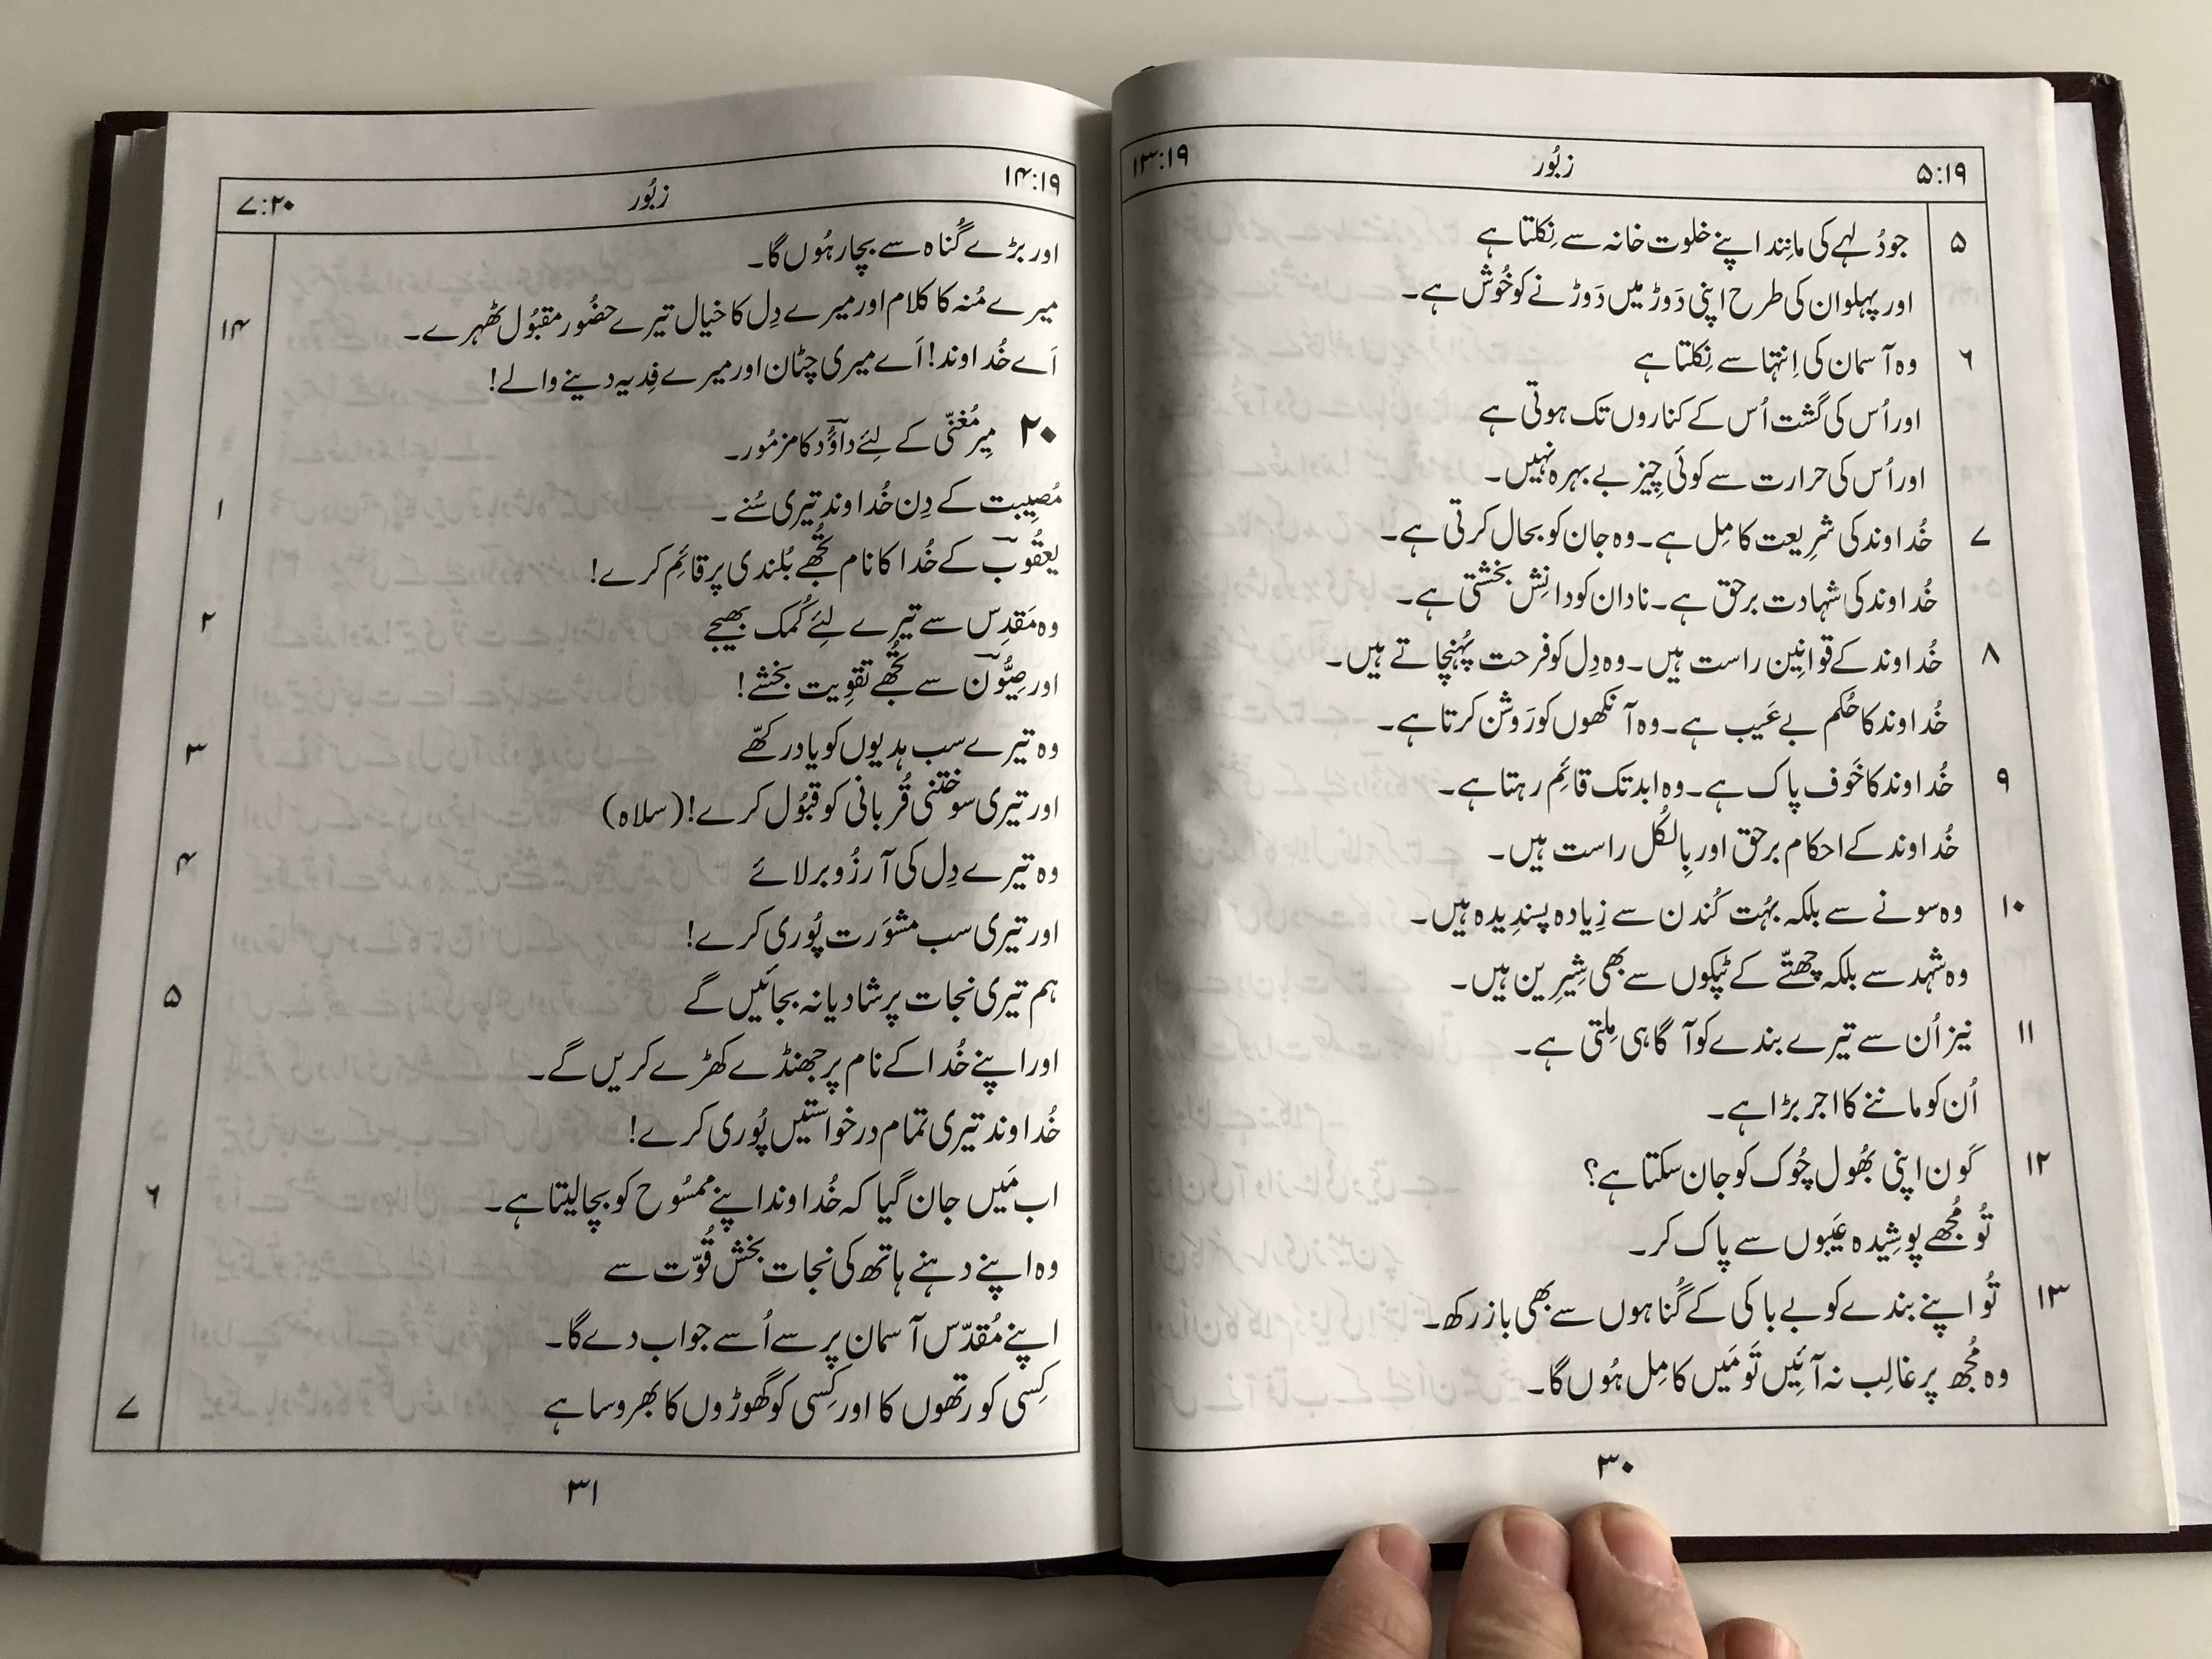 book-of-psalms-from-the-old-testament-in-urdu-language-large-print-3-.jpg